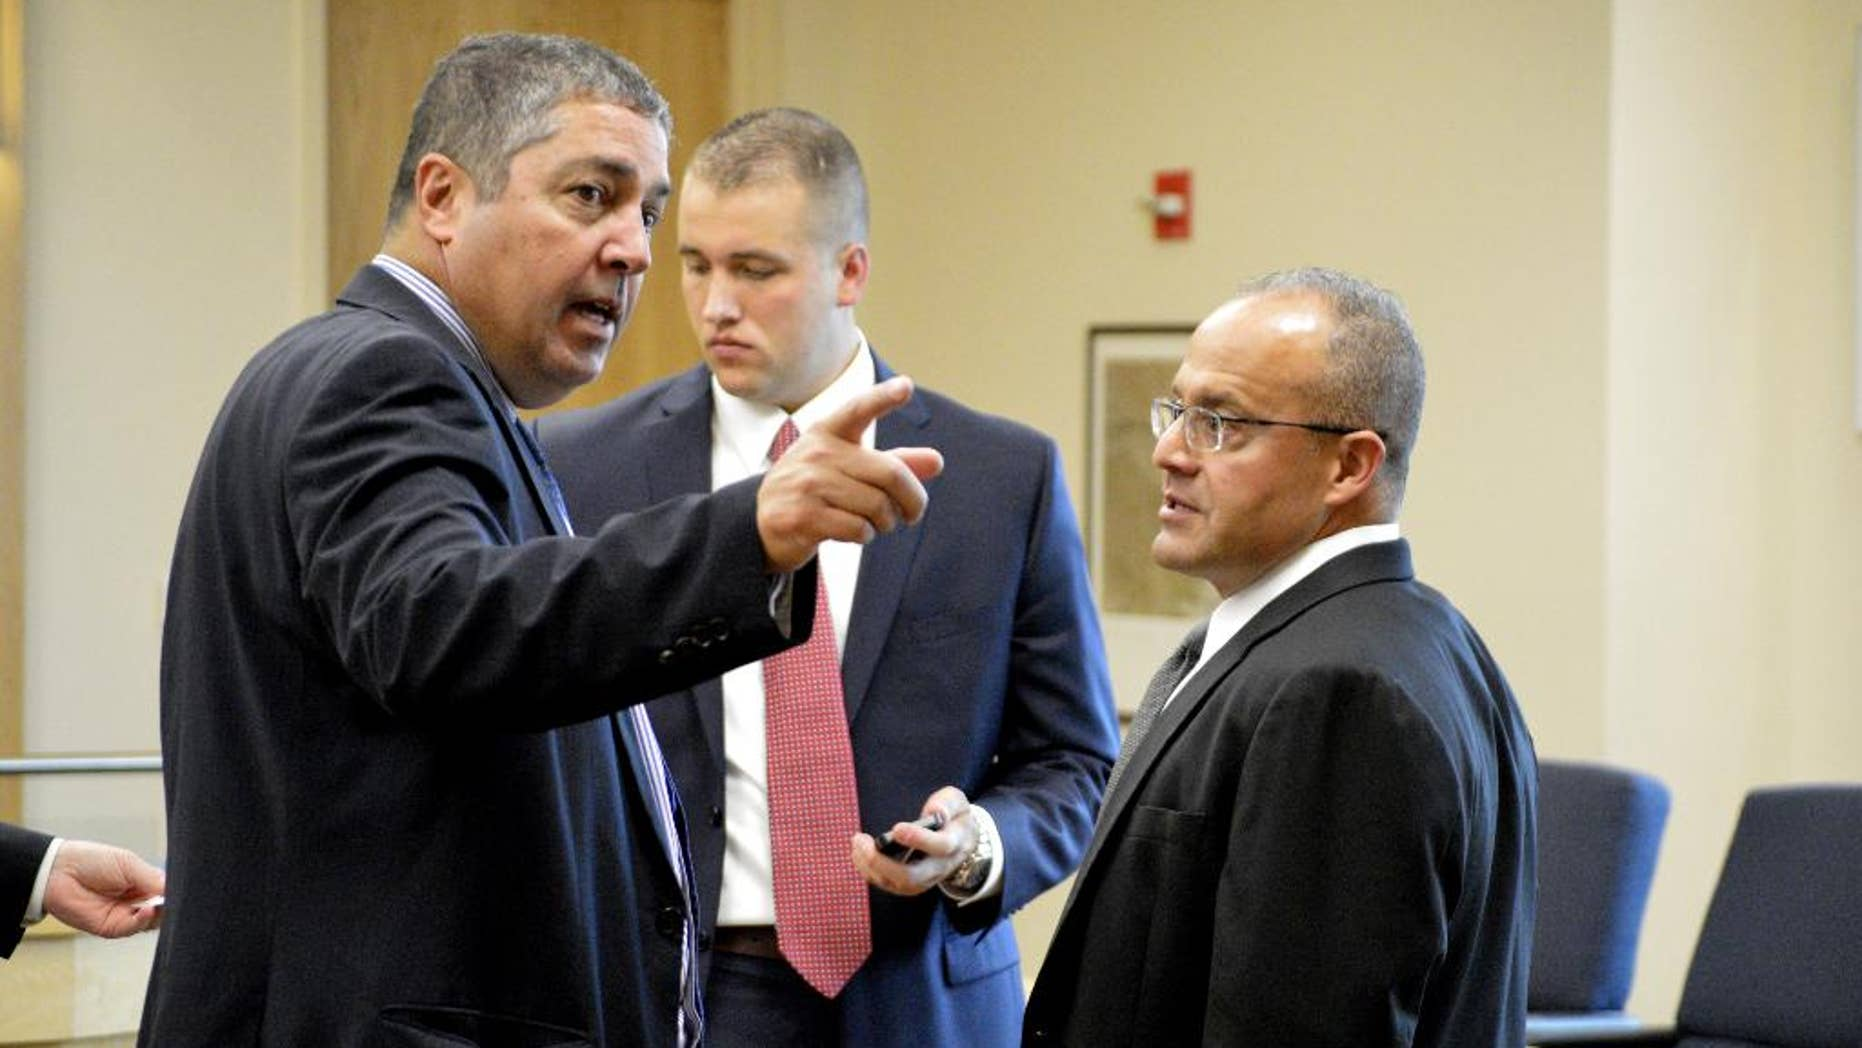 Defense attorneys Sam Bregman, left and Luis Robles, right, discuss their clients case on Friday, July 31, 2015, in Albuquerque, N.M. A former Albuquerque detective and a current officer are facing murder charges in the March 2014 fatal police shooting of a homeless man. A state judge ruled Friday that a jury can be told limited information about the homeless man's prior arrest. (AP Photo/Russell Contreras)